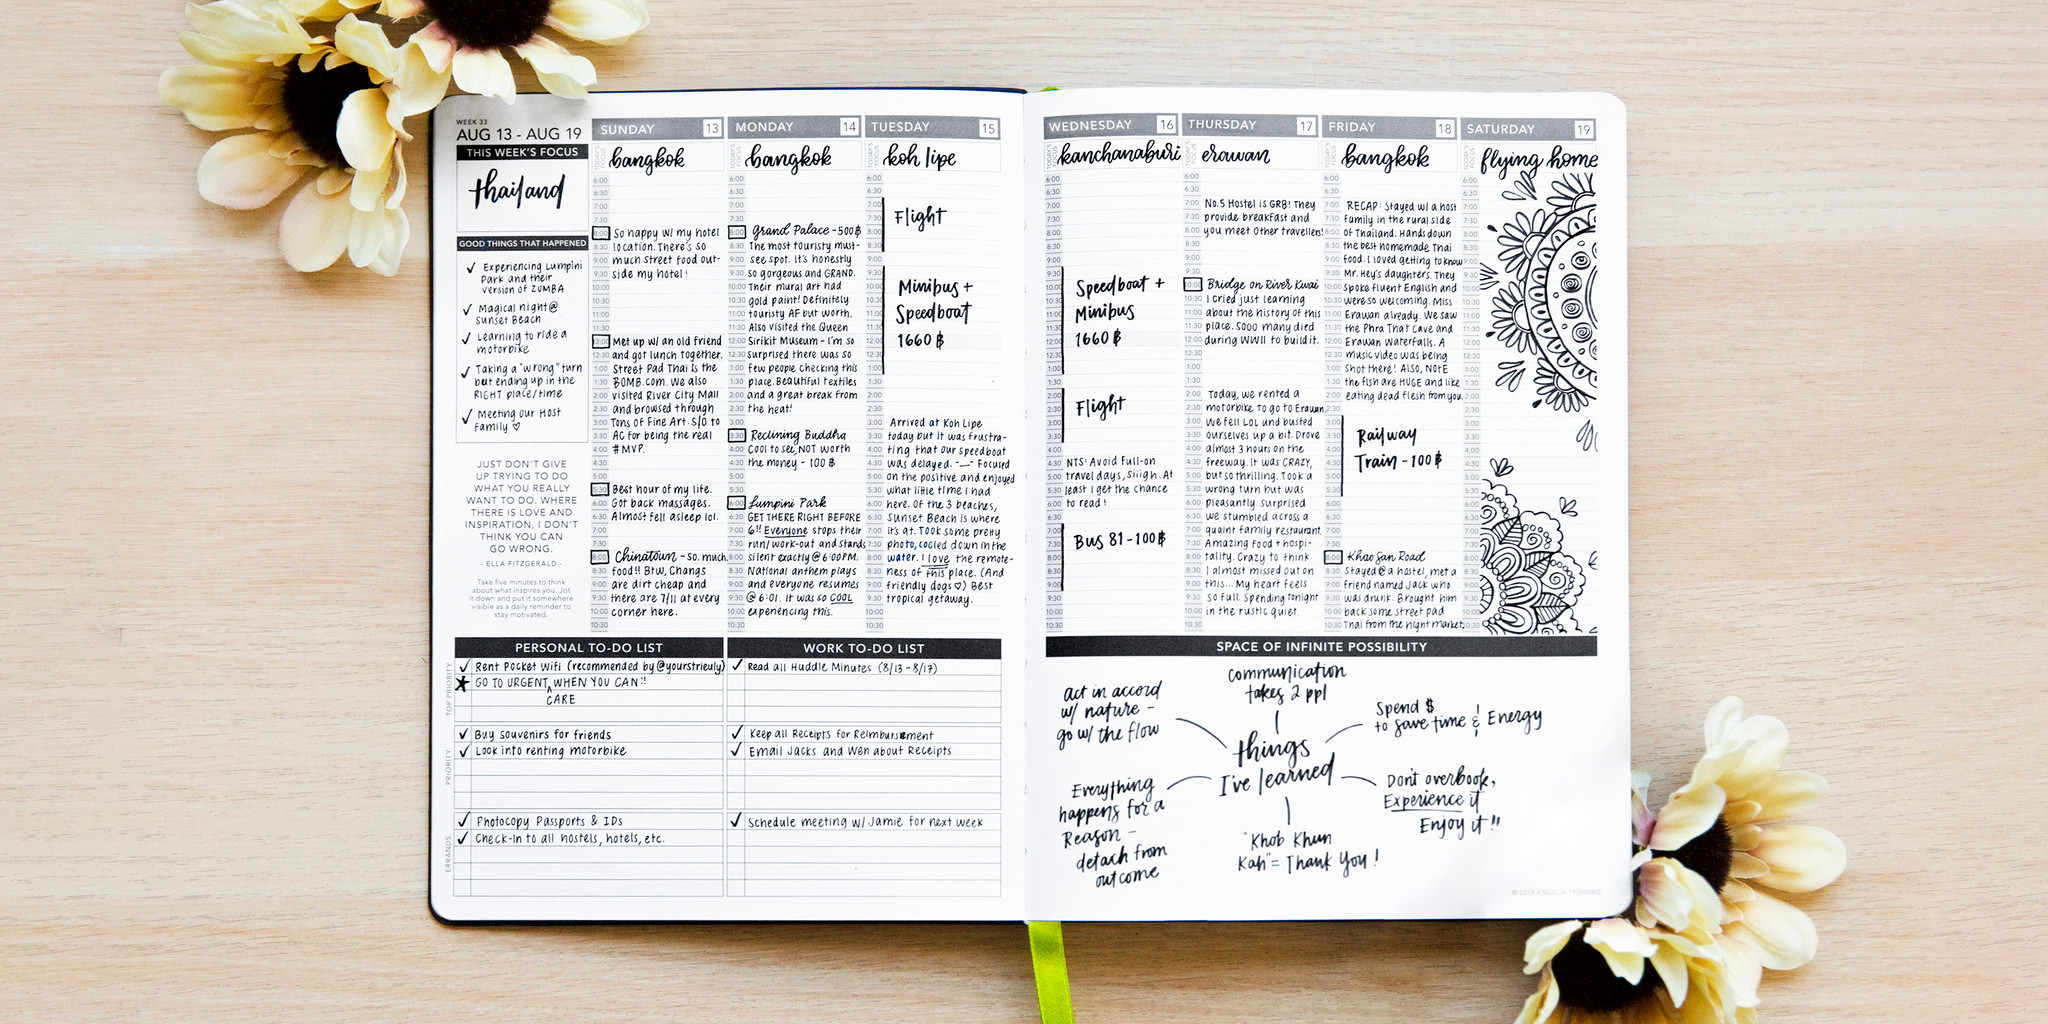 How To Get Started With The Passion Planner